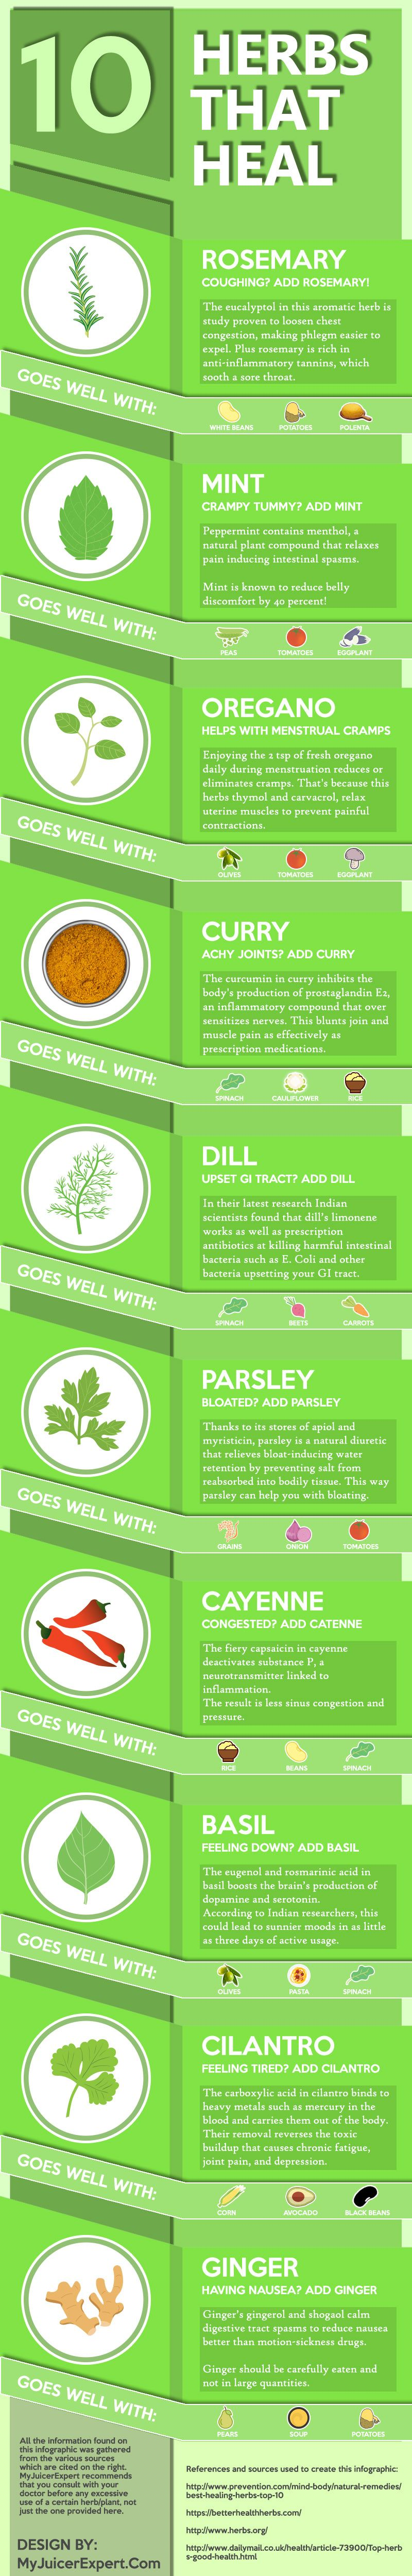 Top 10 Herbs That Heal #Infographic